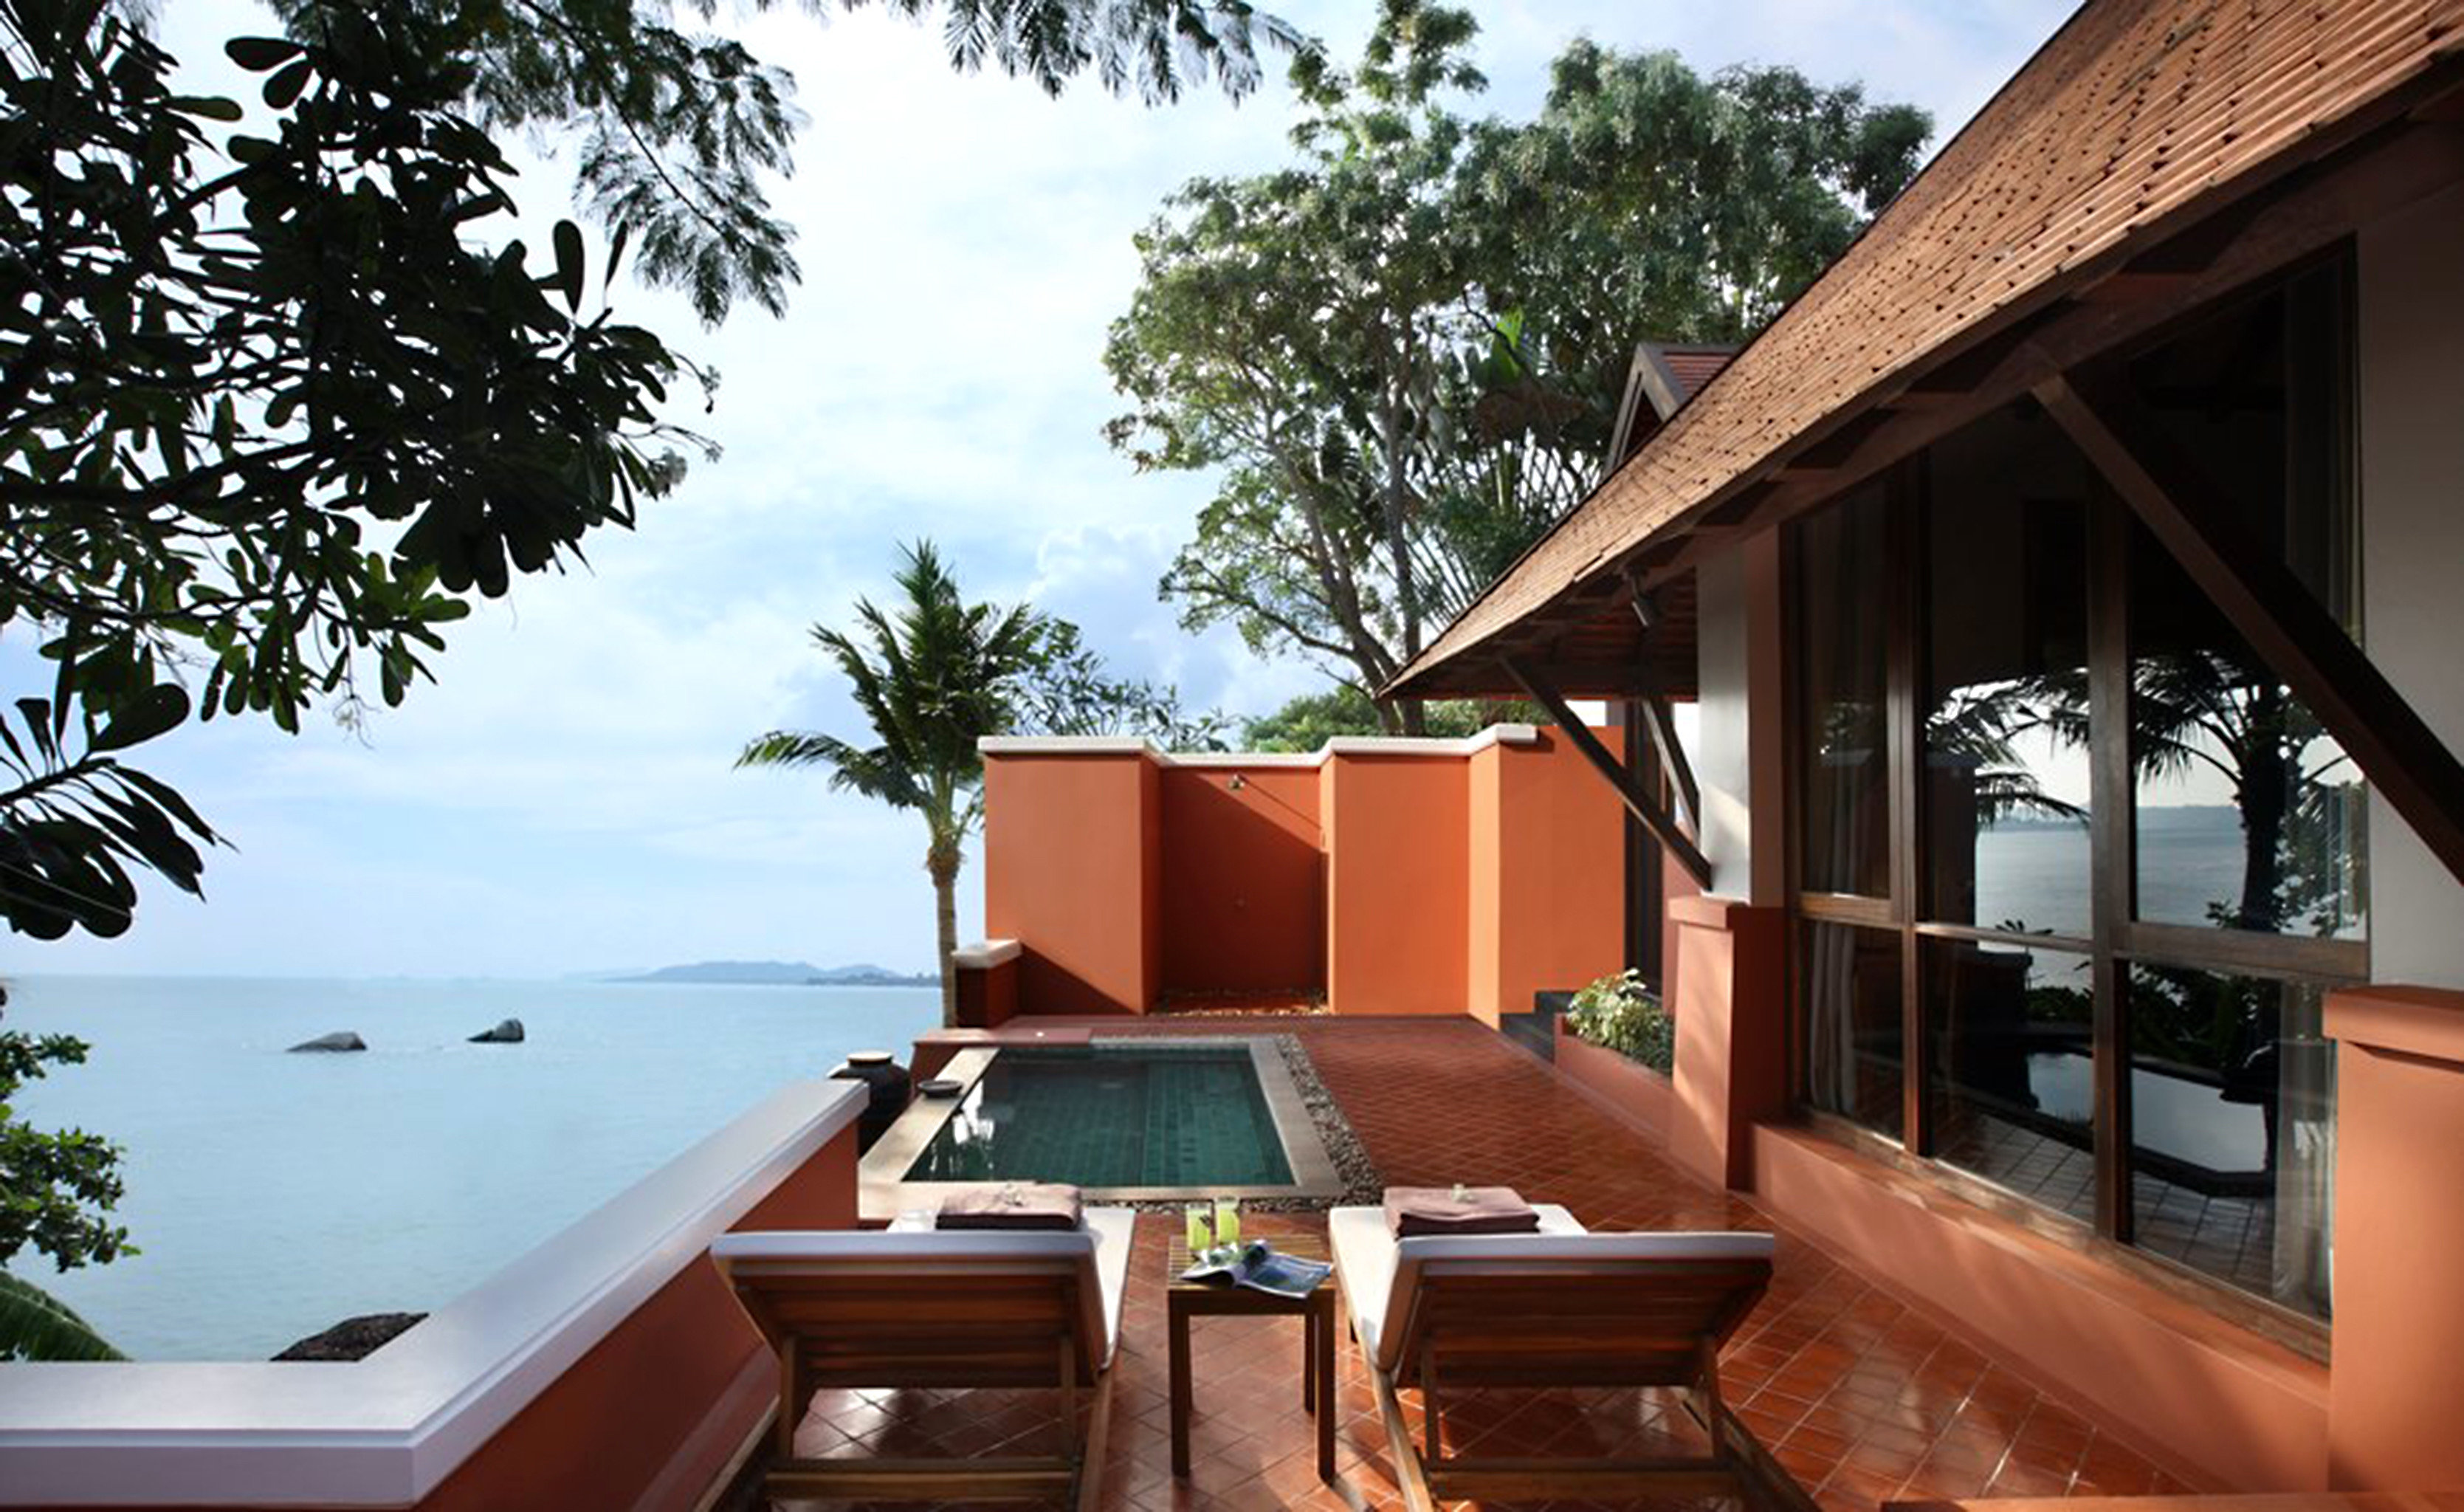 Balcony Beachfront Cultural Jungle Pool Resort Romantic Rooftop Tropical Waterfront tree house building property home Villa cottage roof outdoor structure backyard log cabin Deck